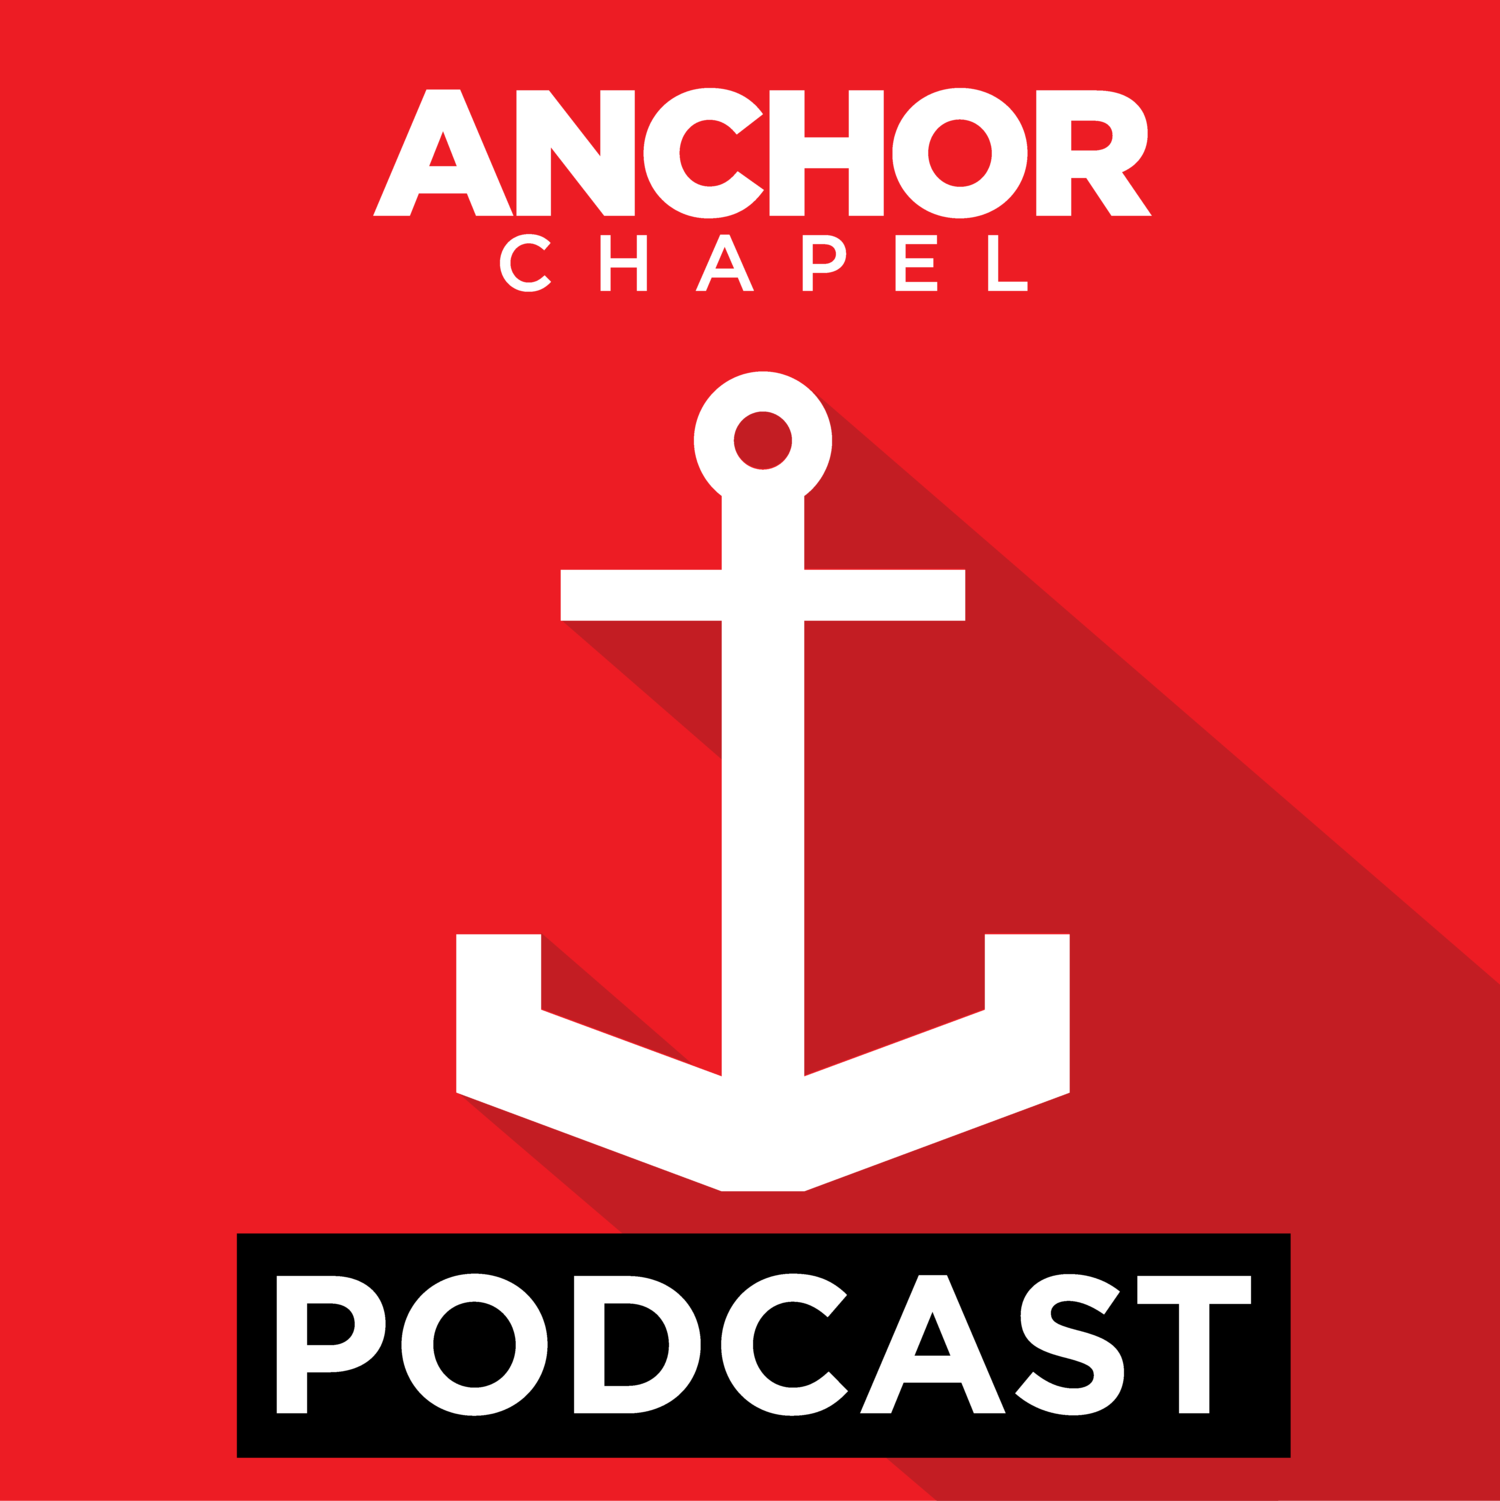 MESSAGES - Anchor Chapel